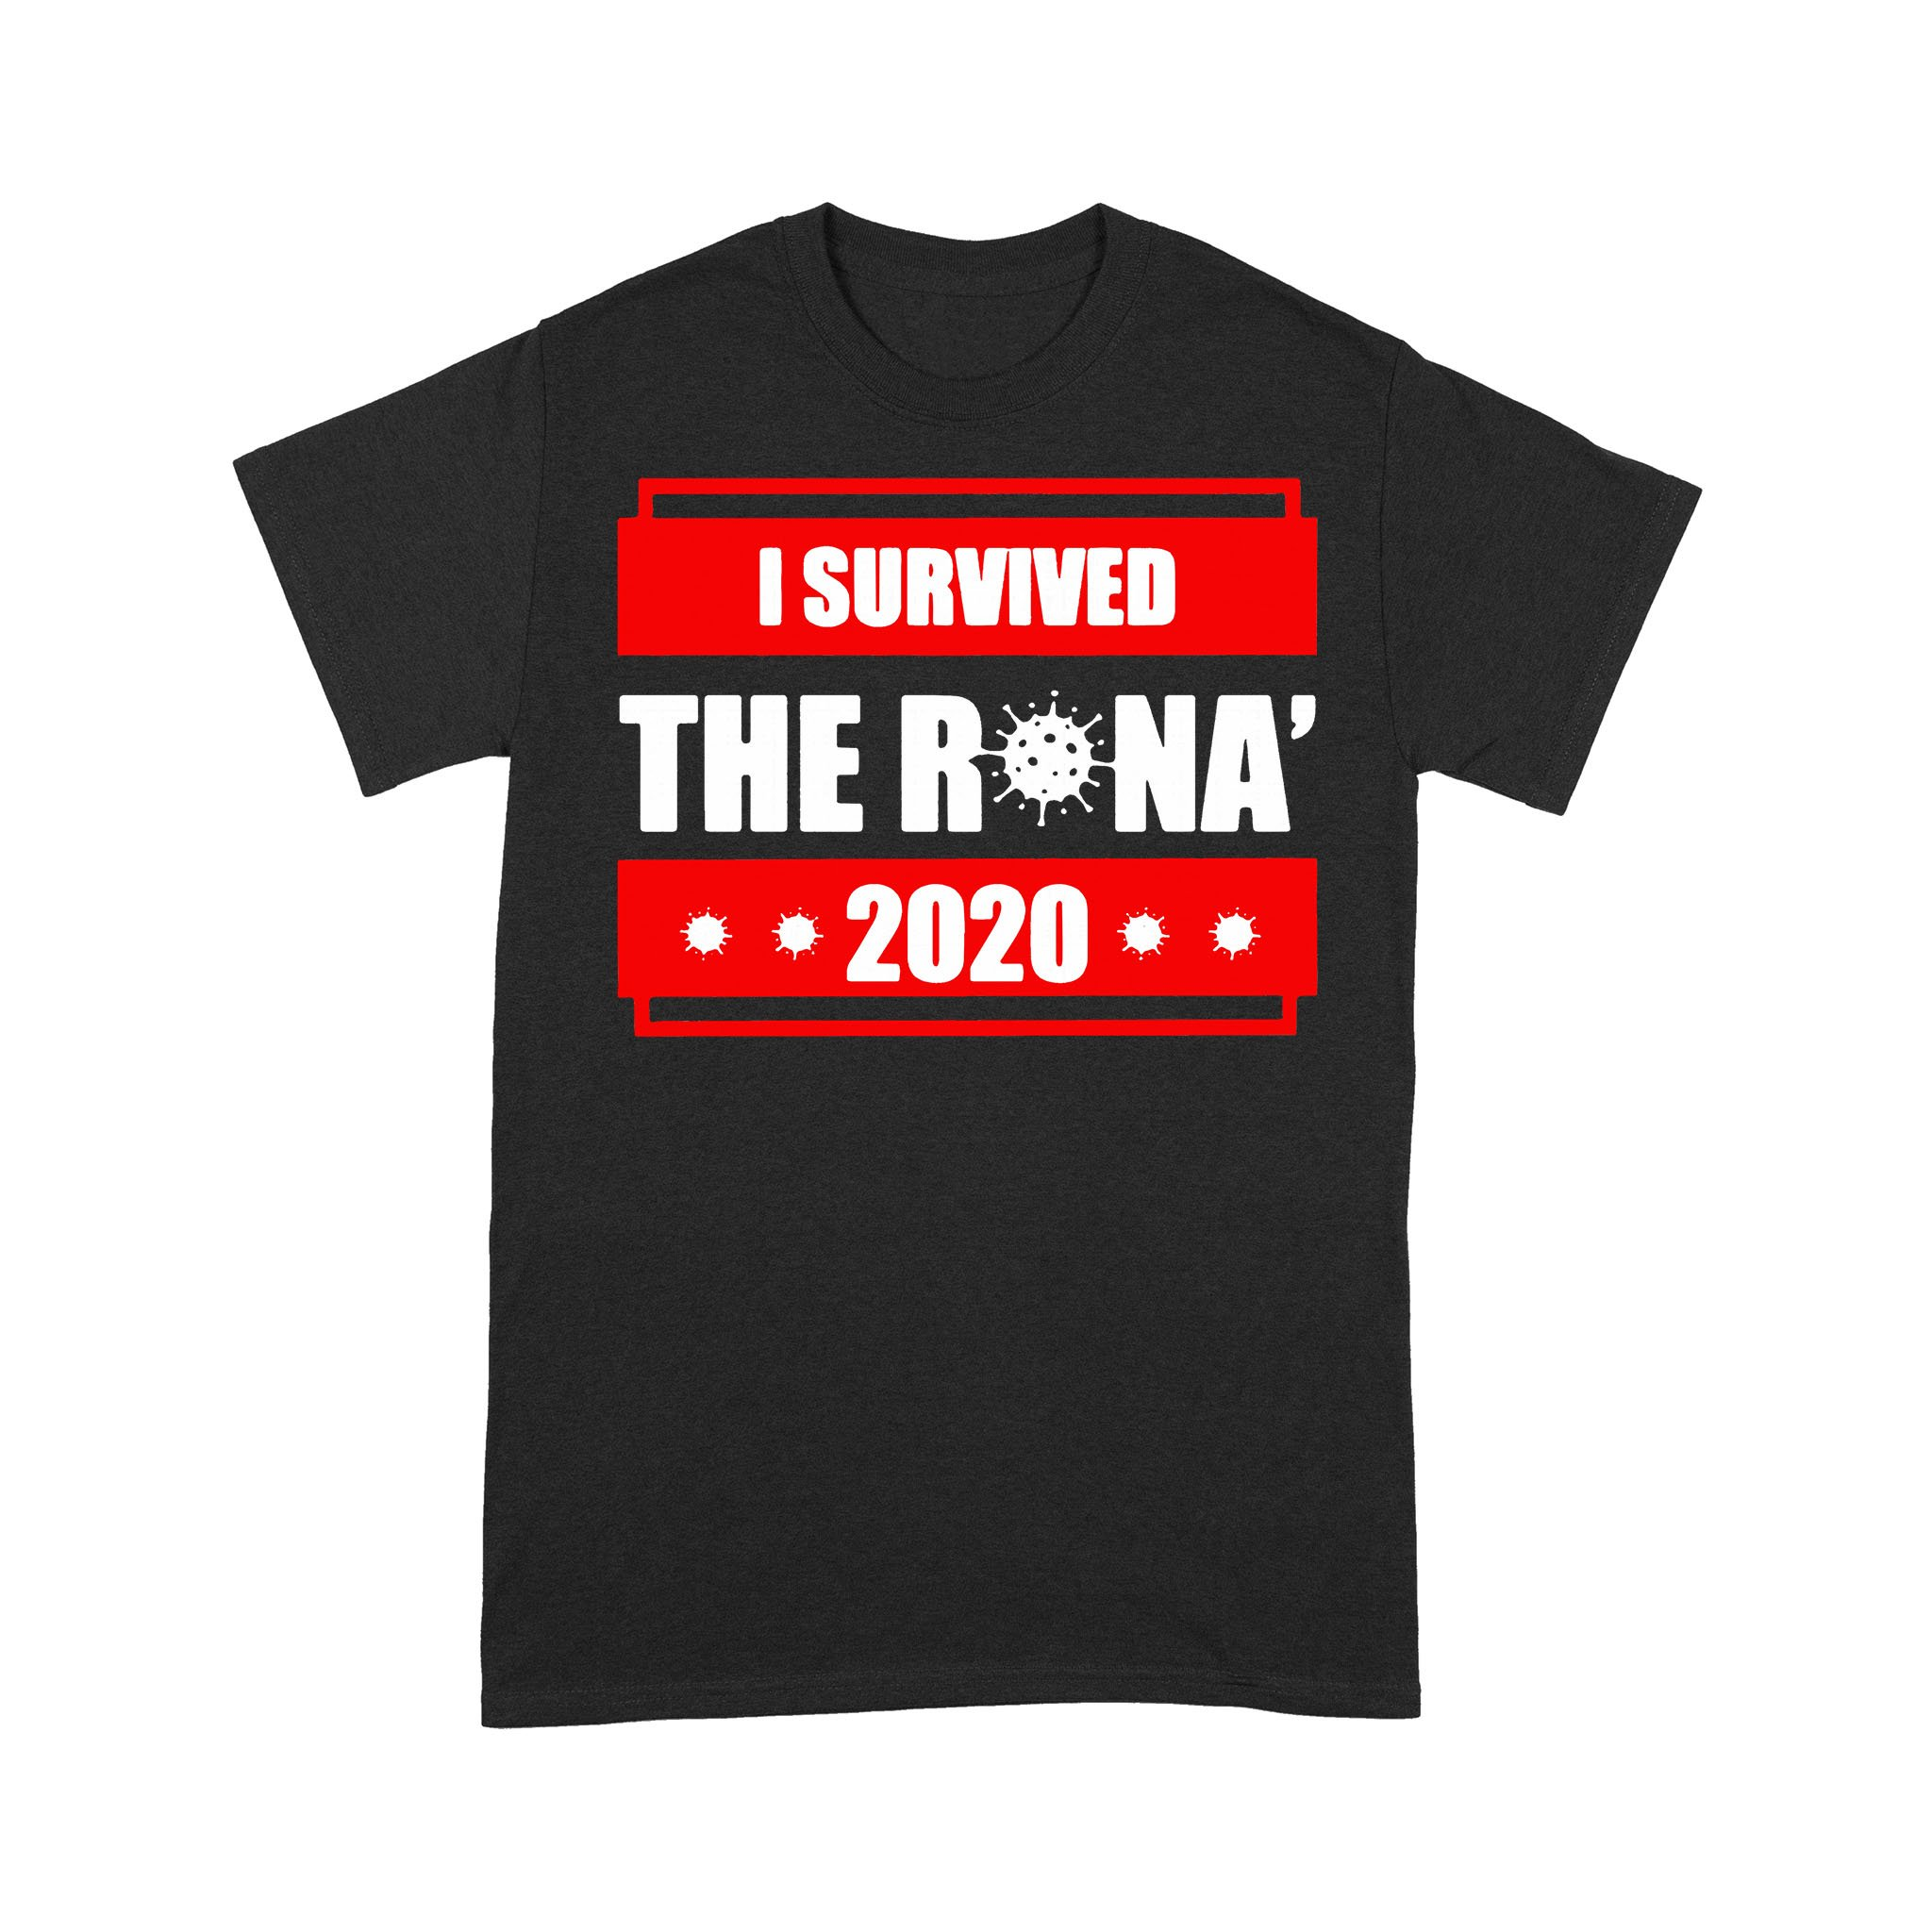 I Survived The Rona 2020 T-shirt